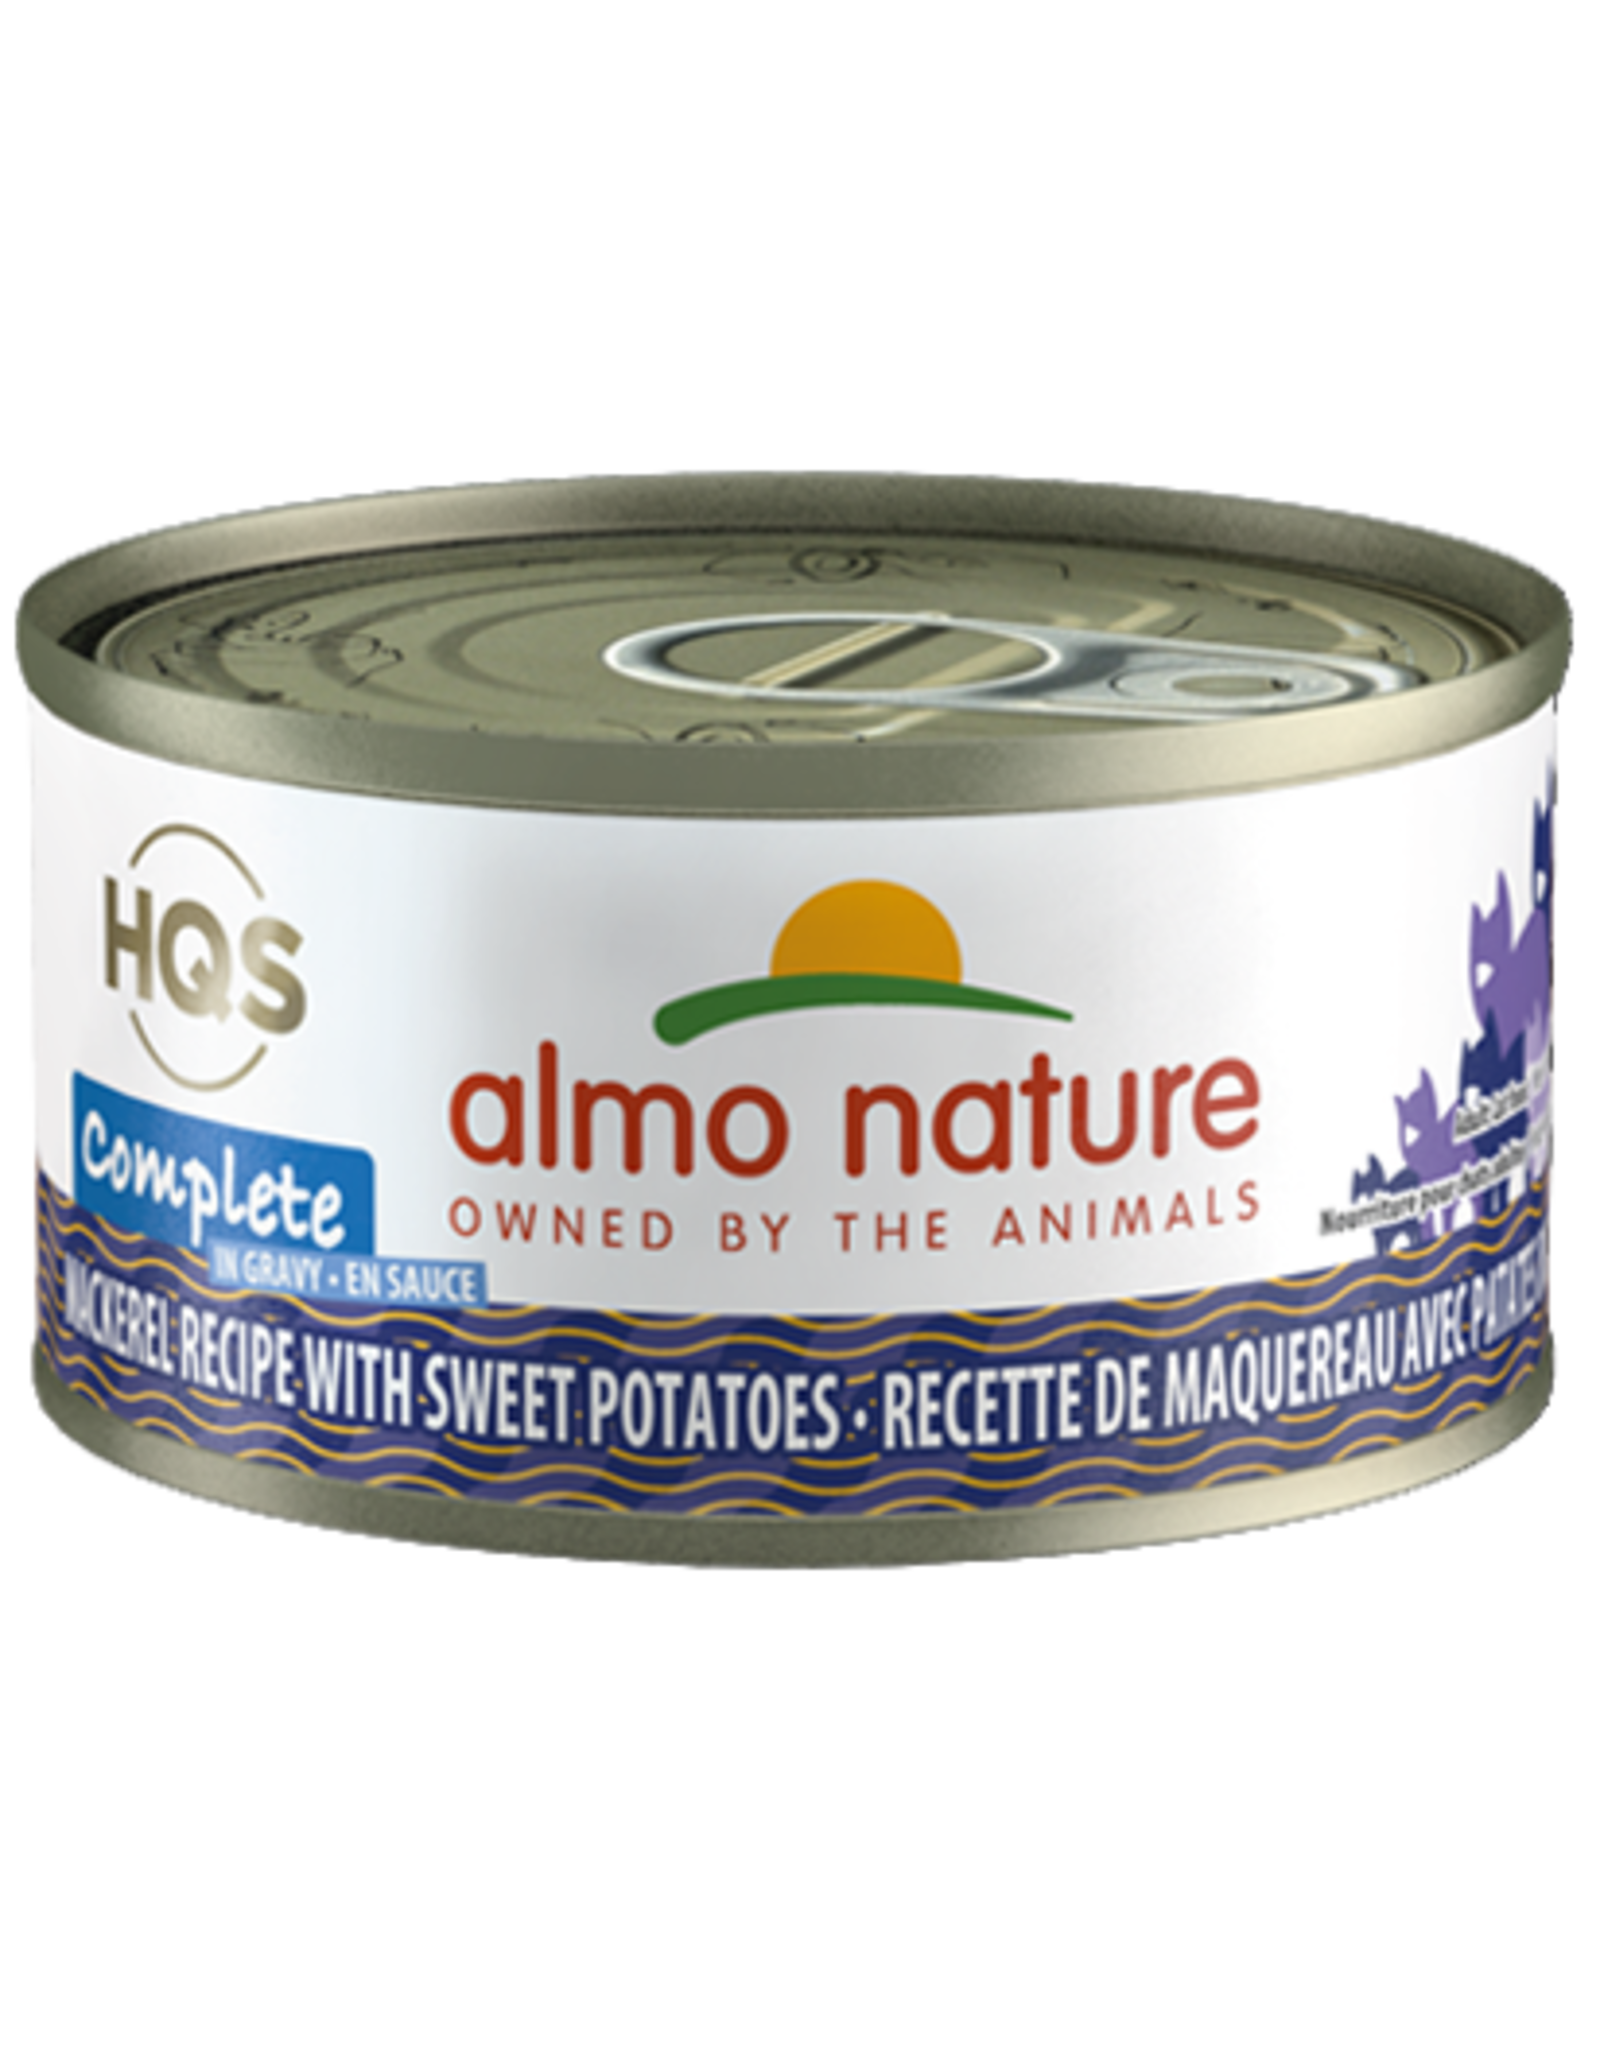 Almo Nature Almo Nature HQS Complete Wet Cat Food Mackerel Recipe with Sweet Potatoes in Gravy 2.47oz Can Grain Free